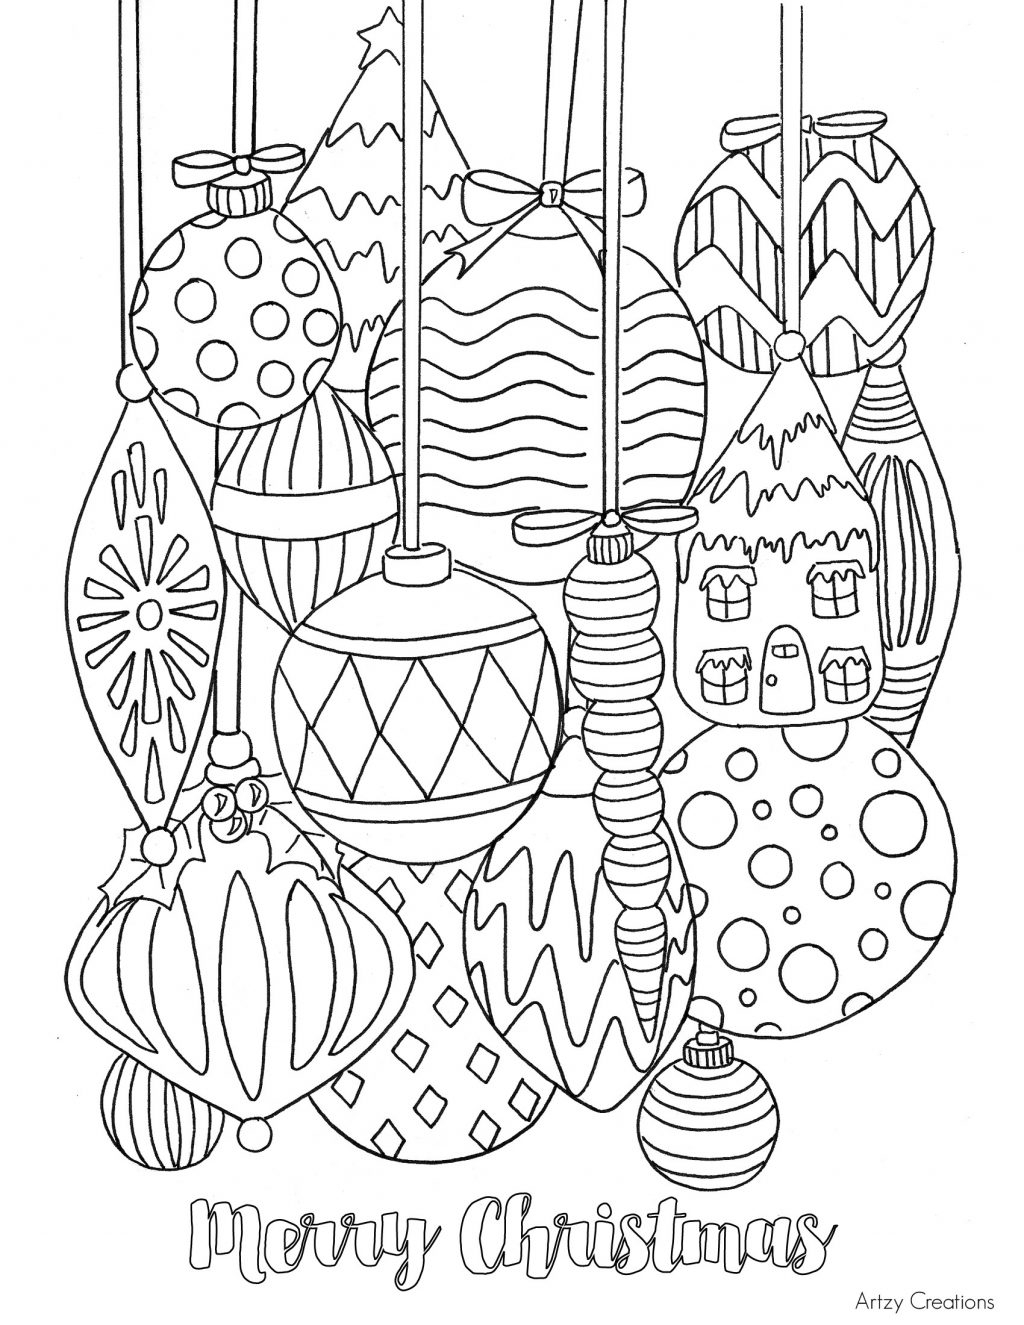 Christmas Wreath Coloring Pages Coloring Pages Christmas Wreath Coloring Page Pages Mst Dn Me